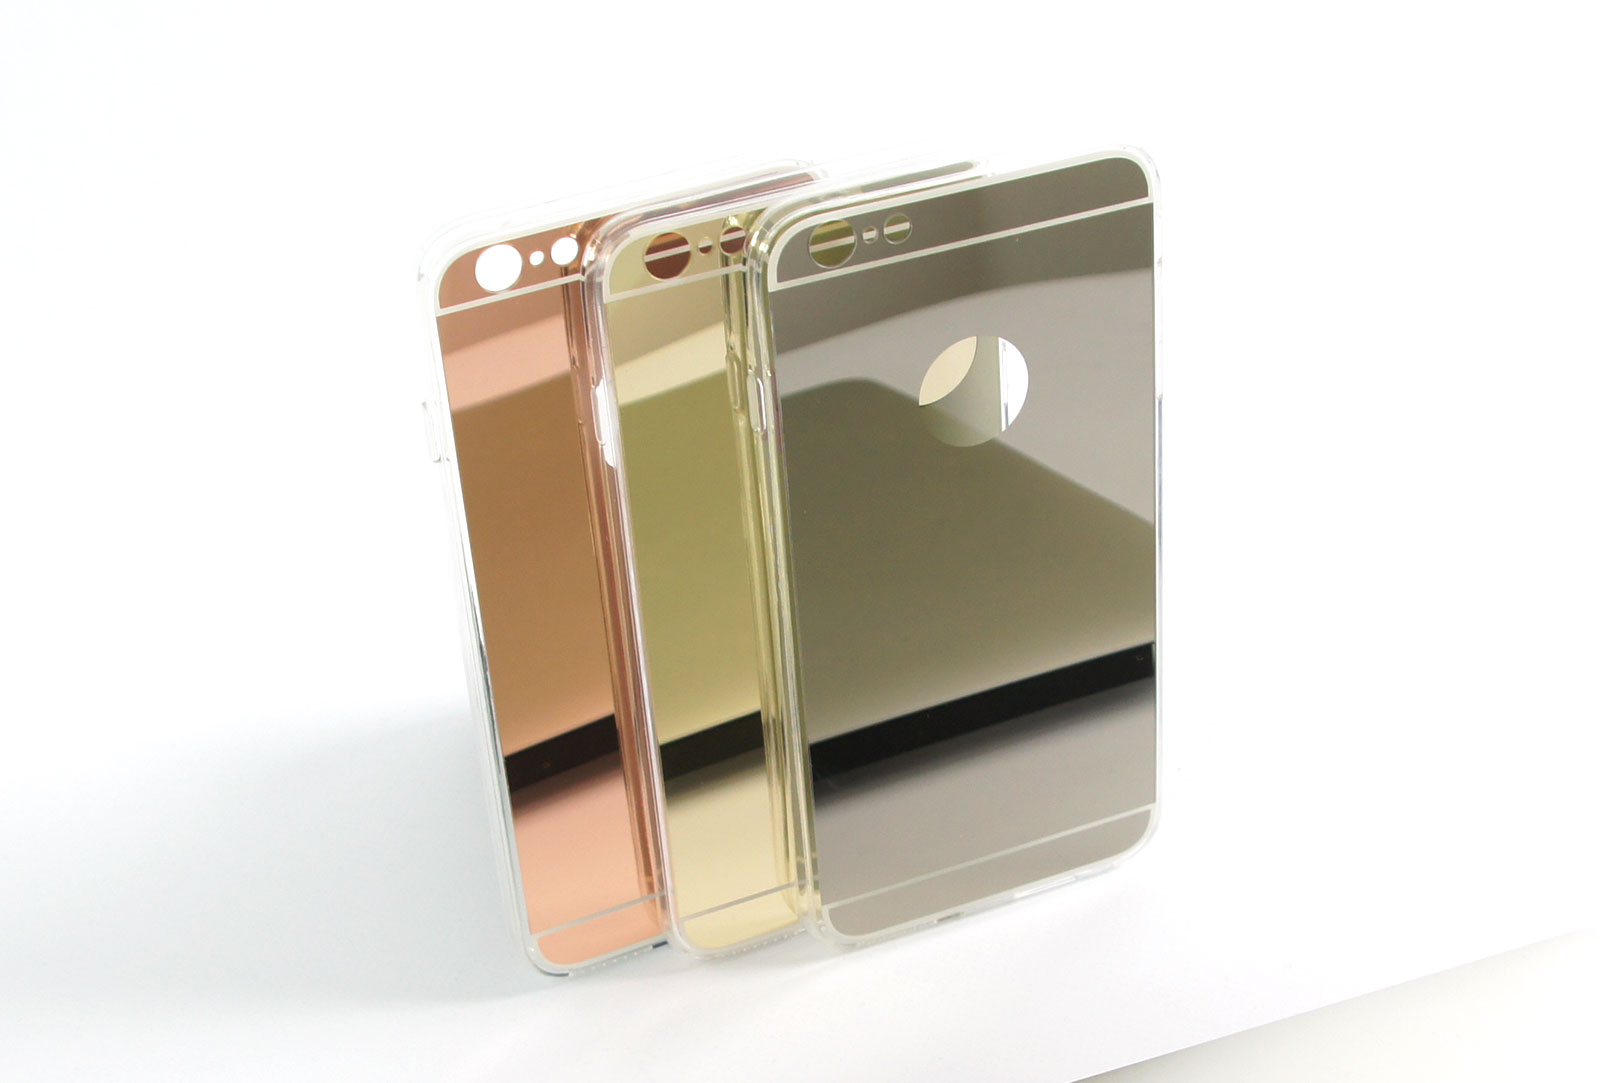 Coque slim miroir gris pour iphone 5 et iphone se for Coque iphone 5 miroir